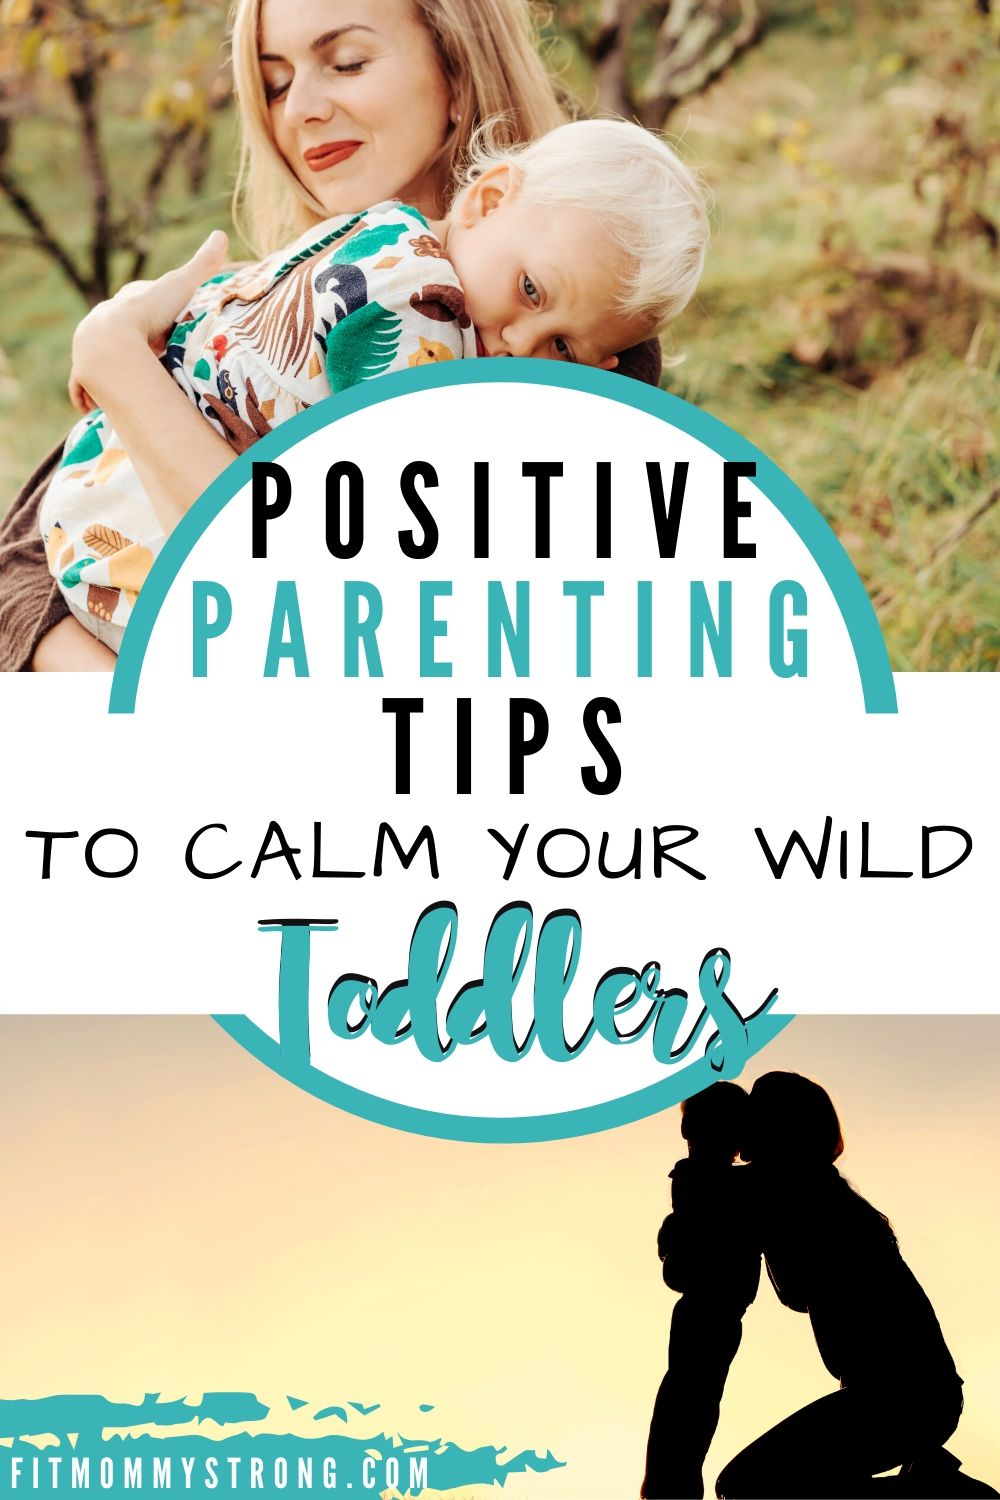 Toddlerhood is a crazy time for kiddos and parents. Using these positive parenting tips to help keep your toddler calm and happy - instead of resorting to forceful discipline can make a world of a difference!  #positiveparenting #toddlerhood #parentingtips